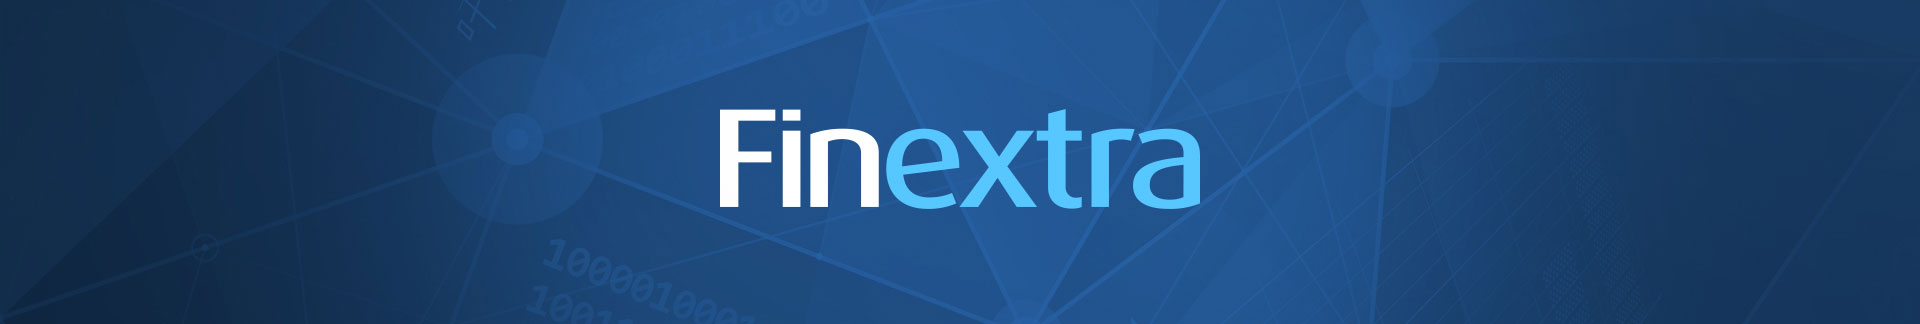 Finextra news banner